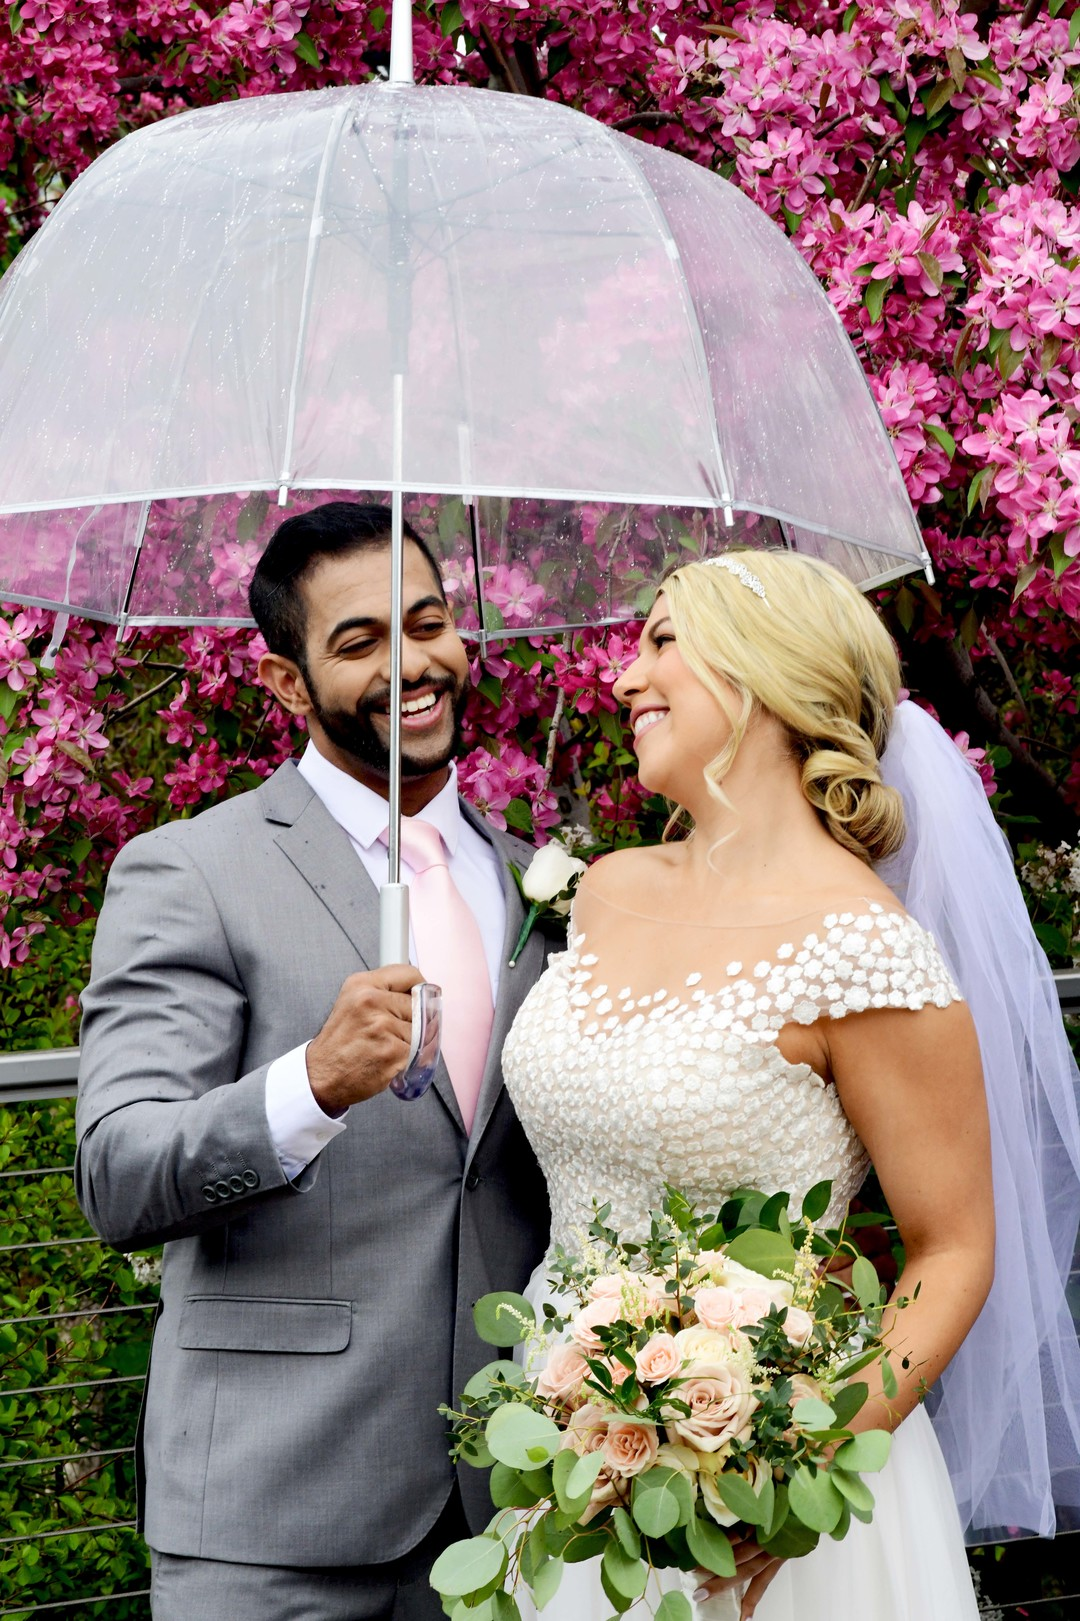 Rainy day wedding photos: Romantic ivory and rose gold wedding inspiration captured by Lori Sapio. See more elegant wedding ideas at CHItheeWED.com!